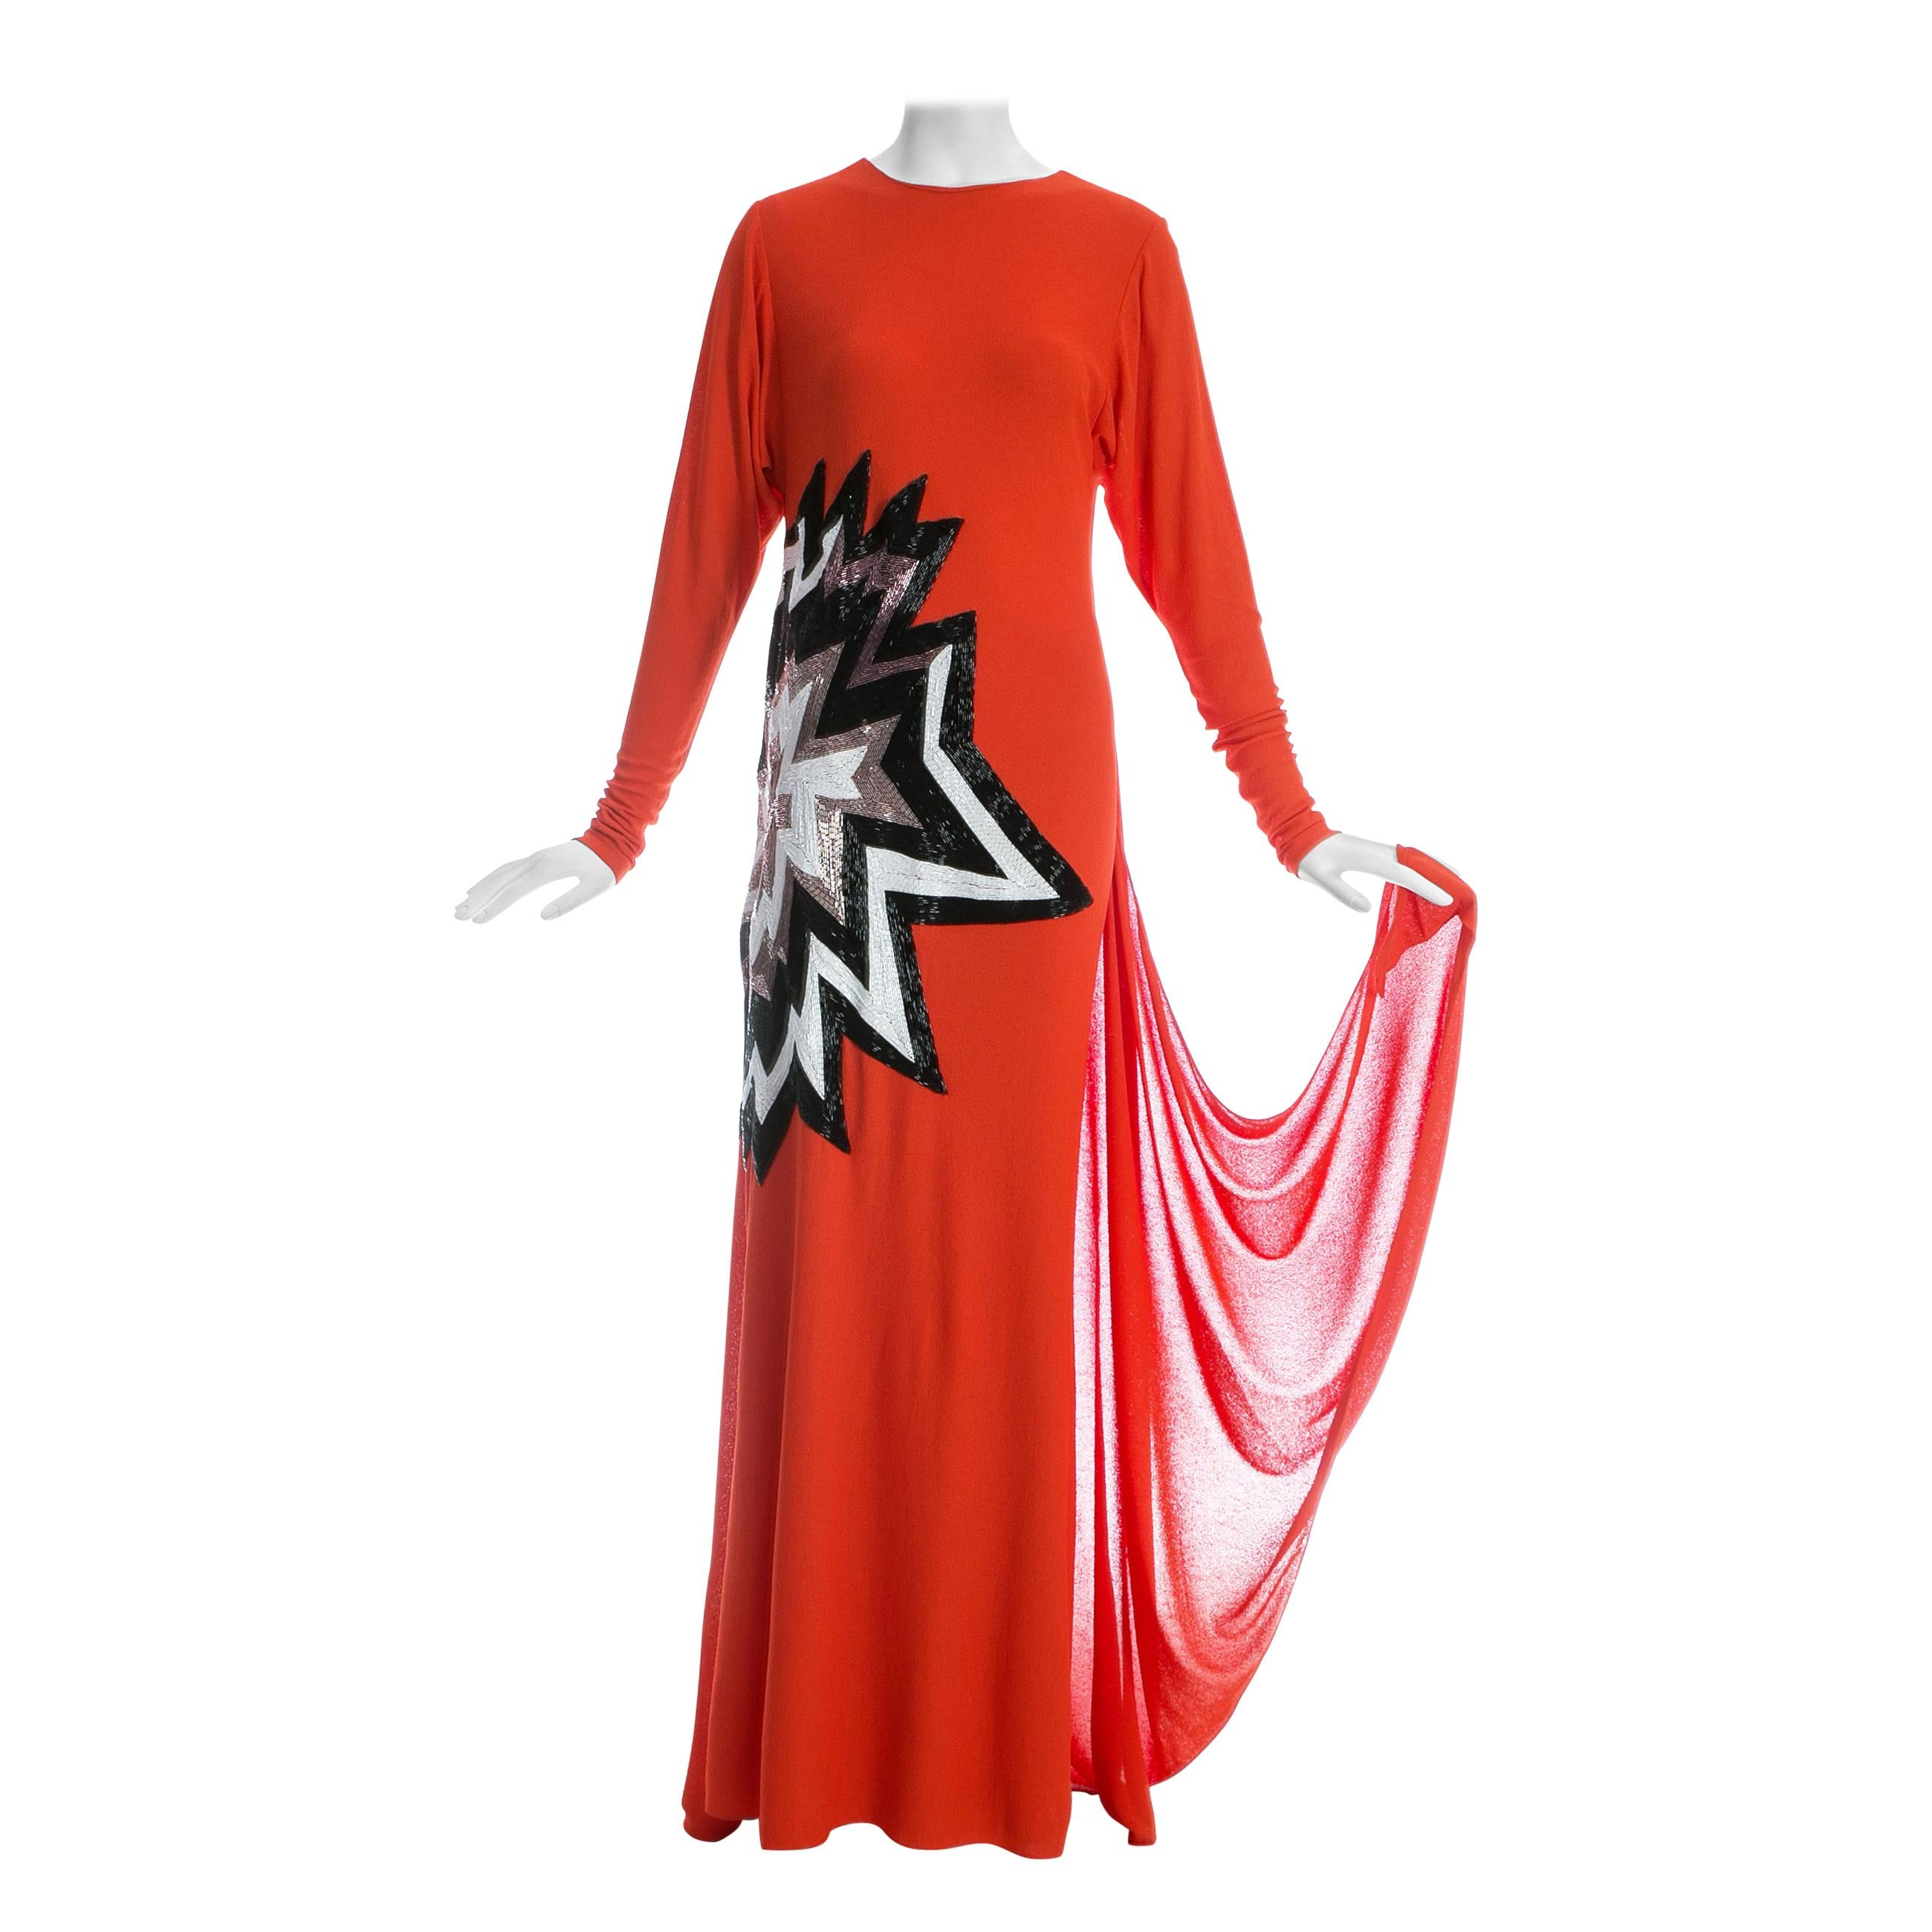 Tom Ford coral viscose crepe beaded evening dress with train, fw 2013